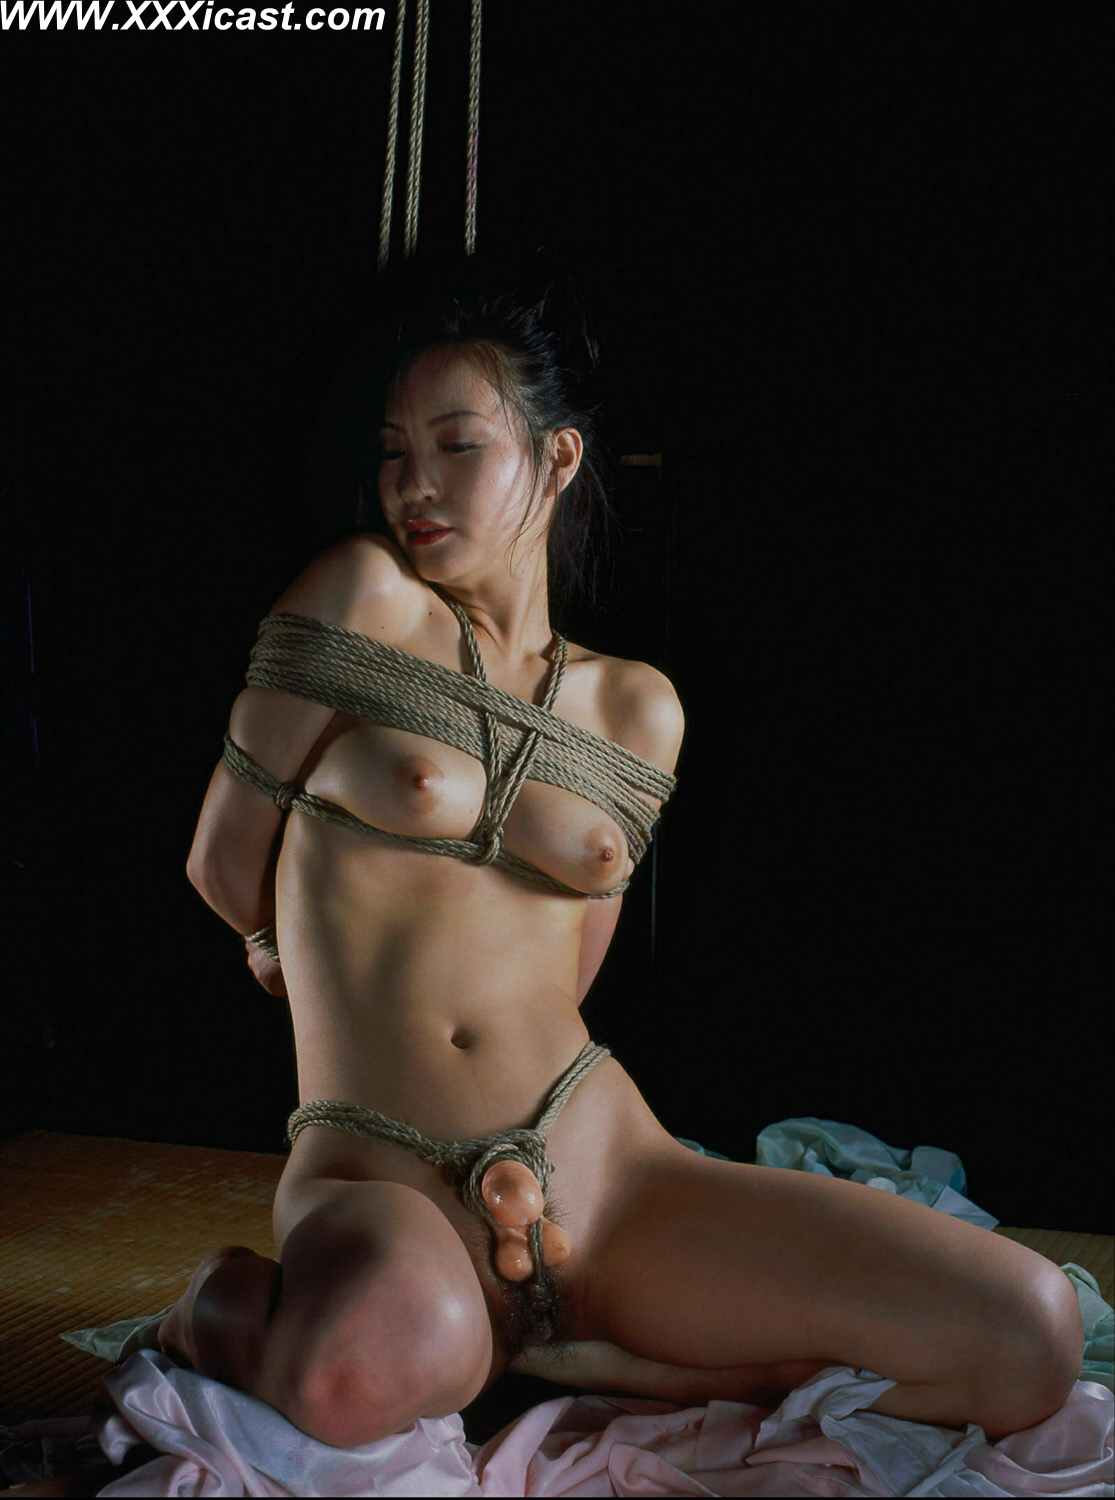 asianrope Asian Rope Bondage Amatory Asian Shibari Rope Bondage Asian Bondage Gallery